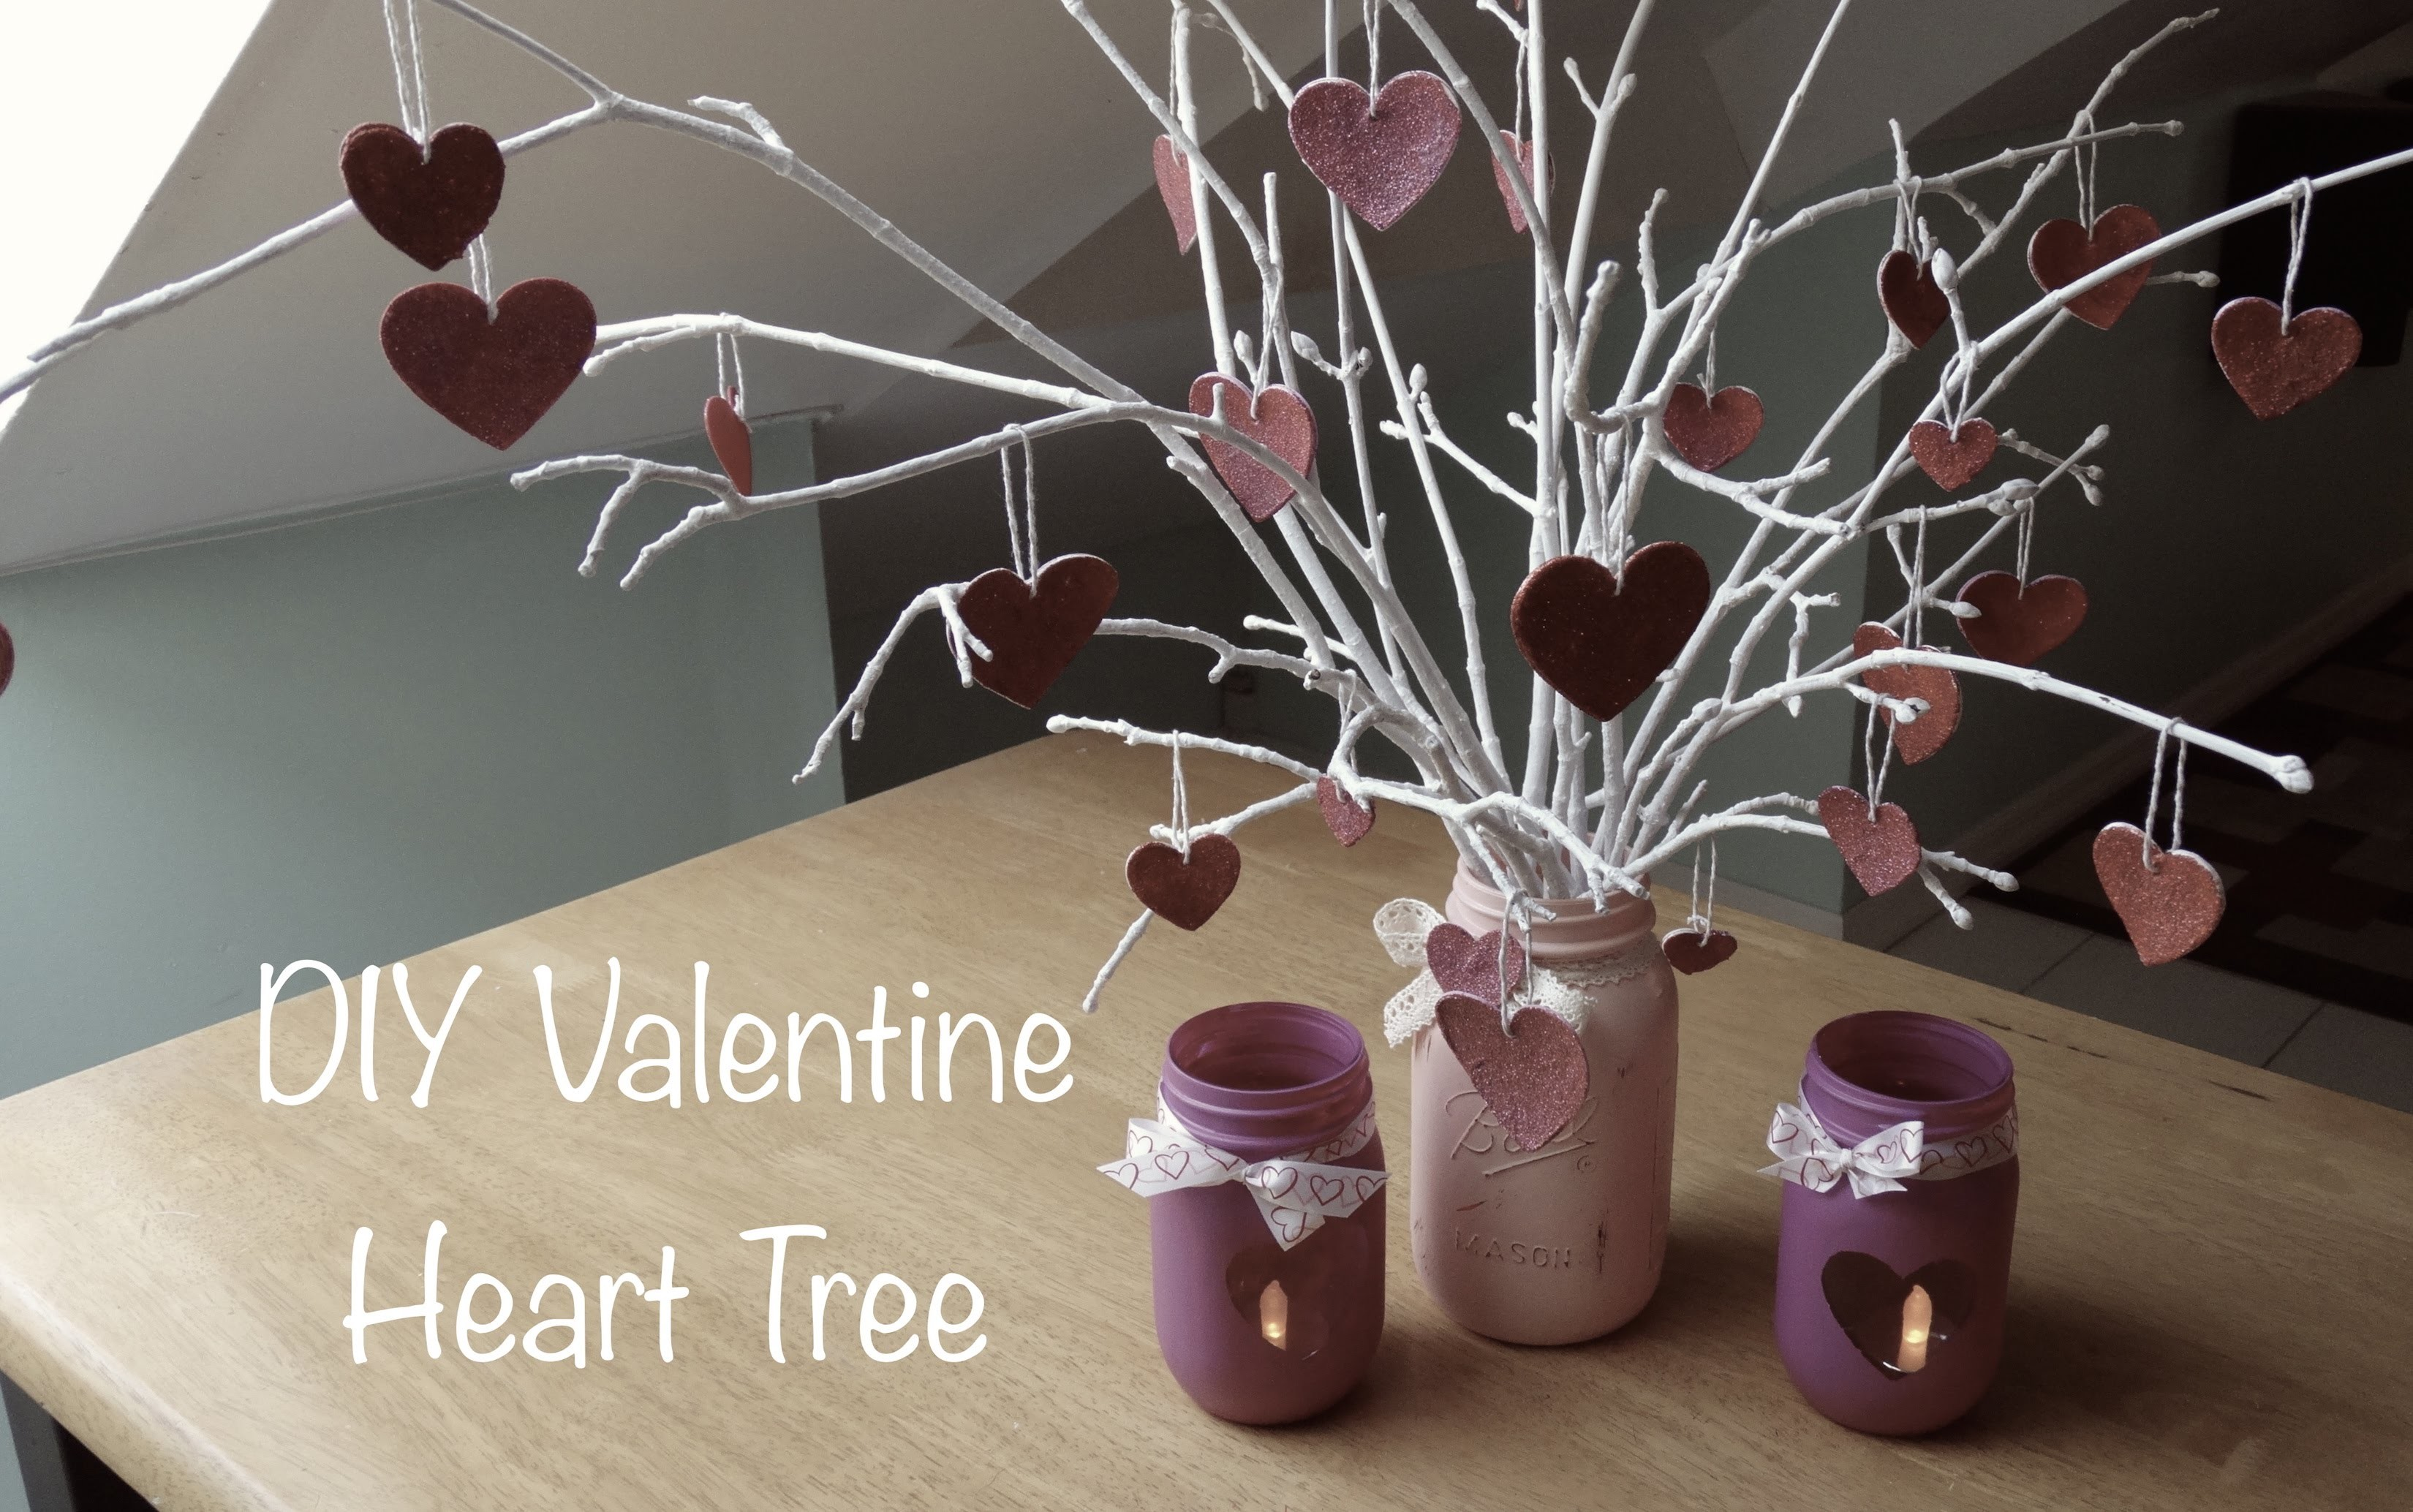 DIY | Valentine Heart Tree :: Gifts and Decor